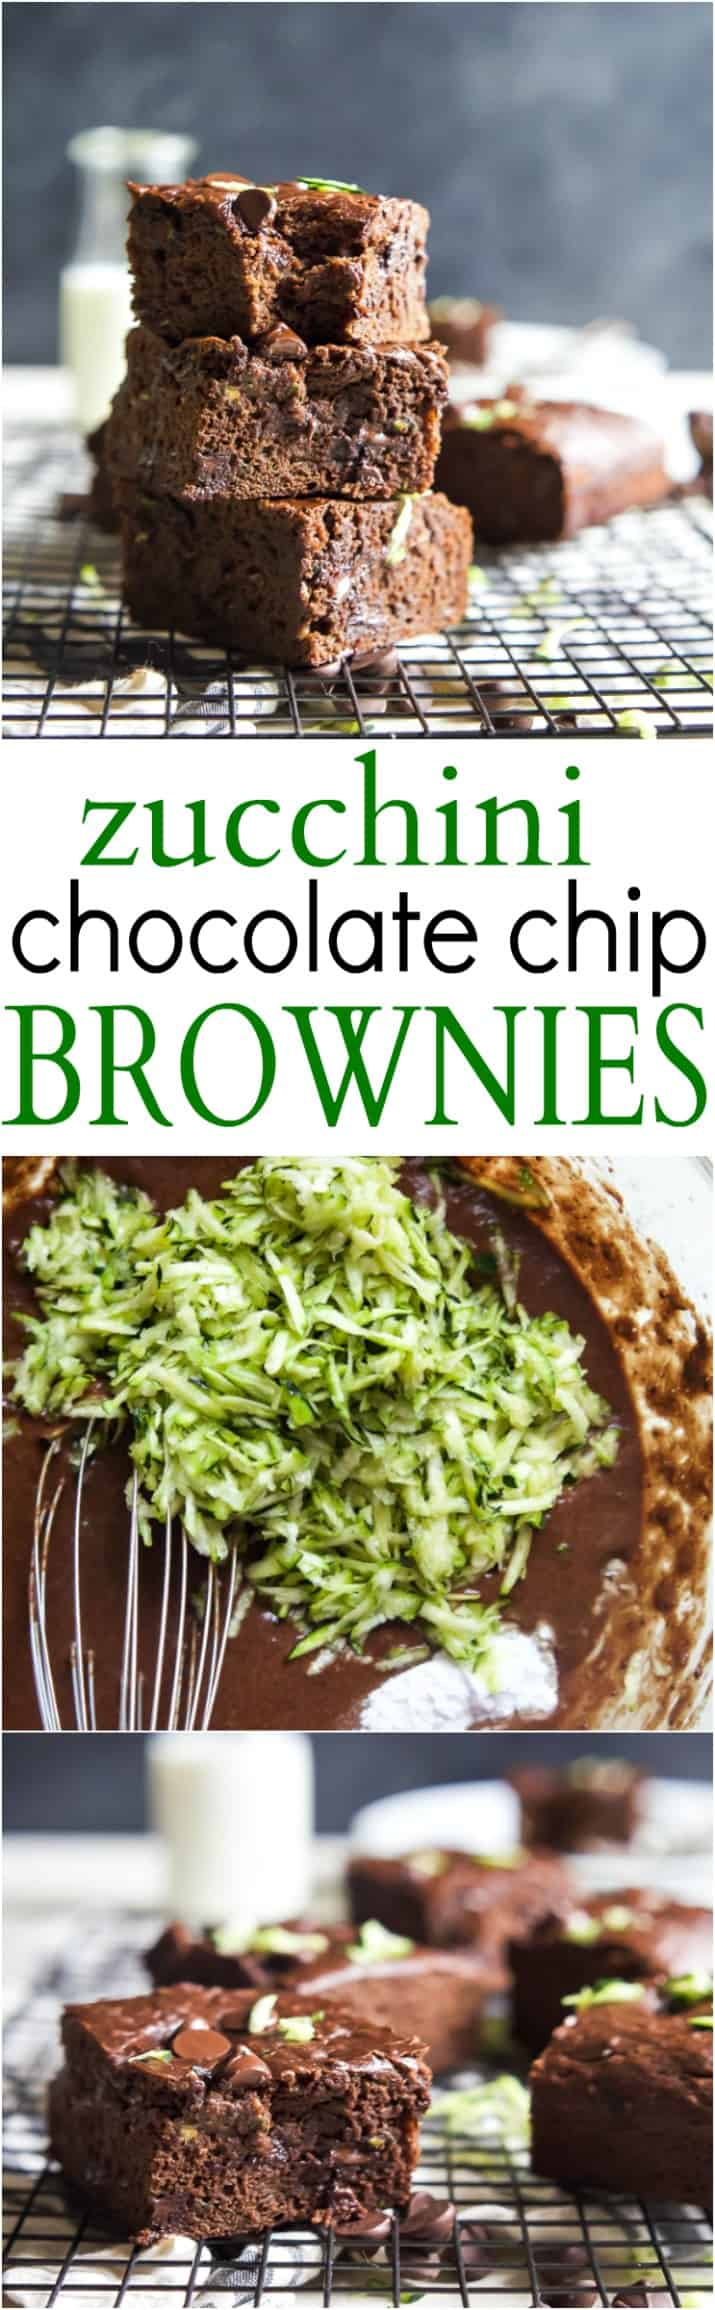 Zucchini Chocolate Chip Brownies that are oil, butter, and egg free AND naturally sweetened! These brownies are extra chocolatey, loaded with zucchini, slightly sweet, and perfectly guilt free - you're gonna love them! | joyfulhealthyeats.com